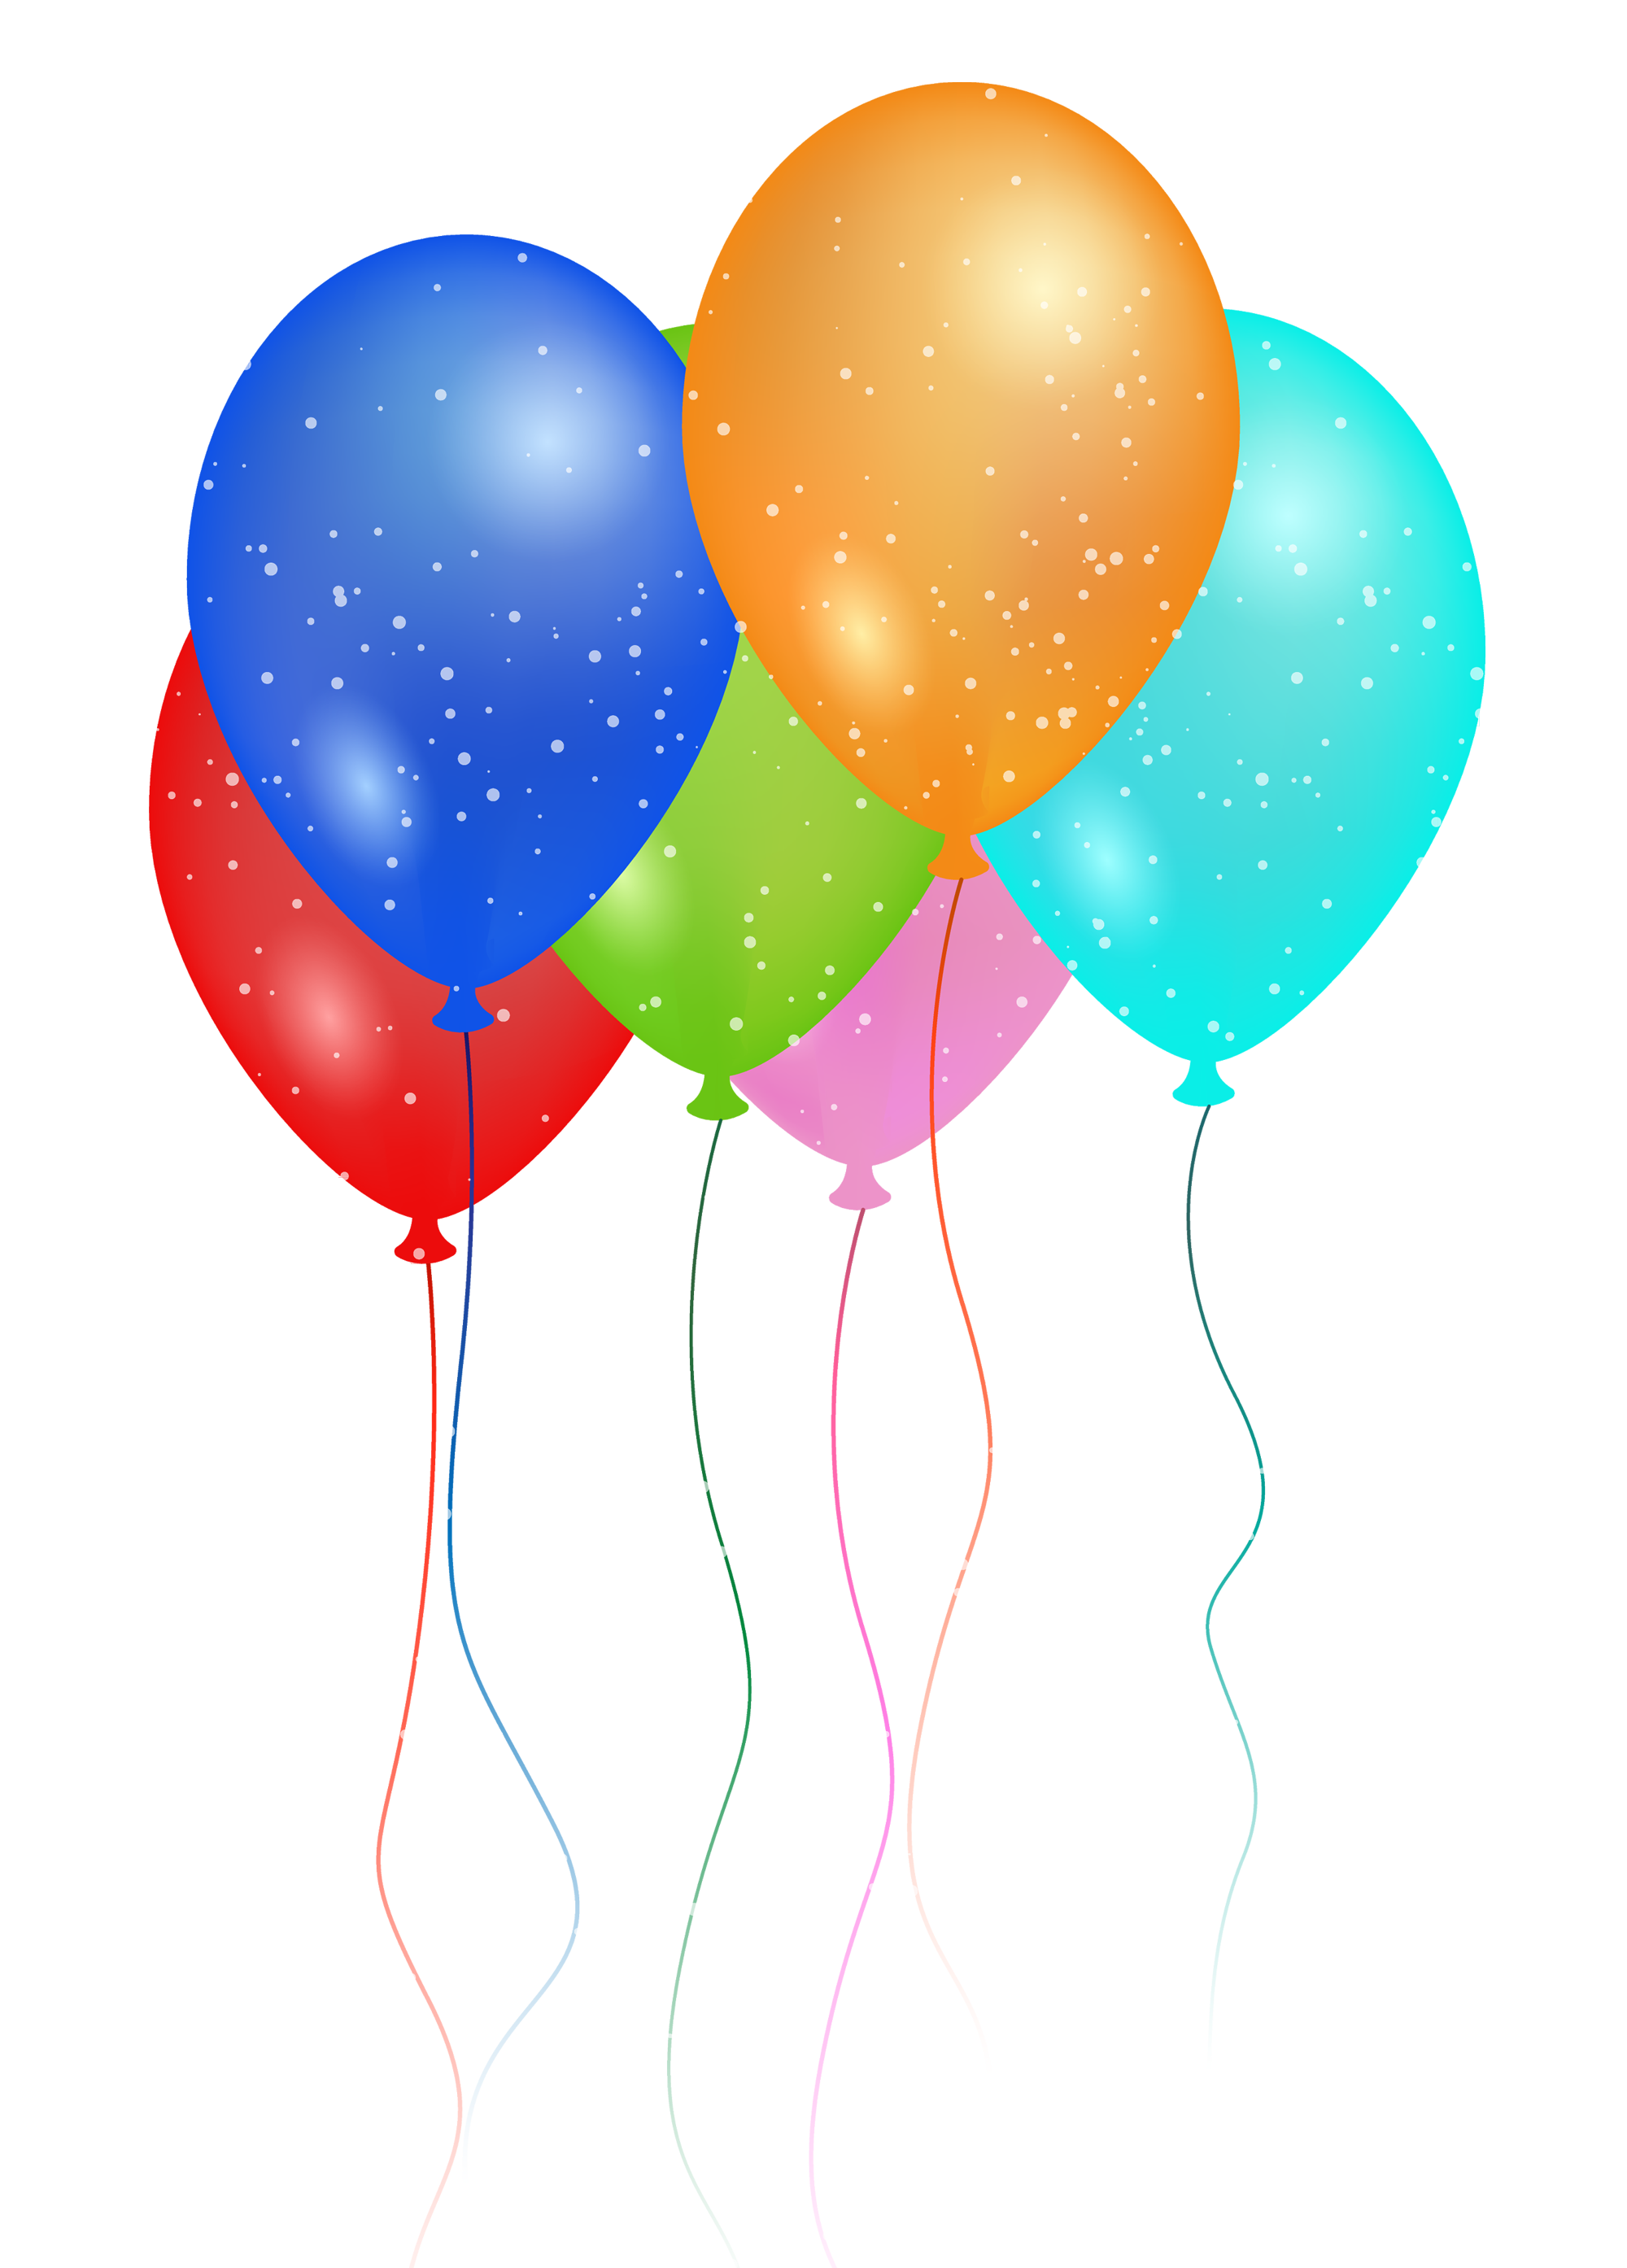 Birthday Party Balloon PNG image 43927 Free Icons and PNG